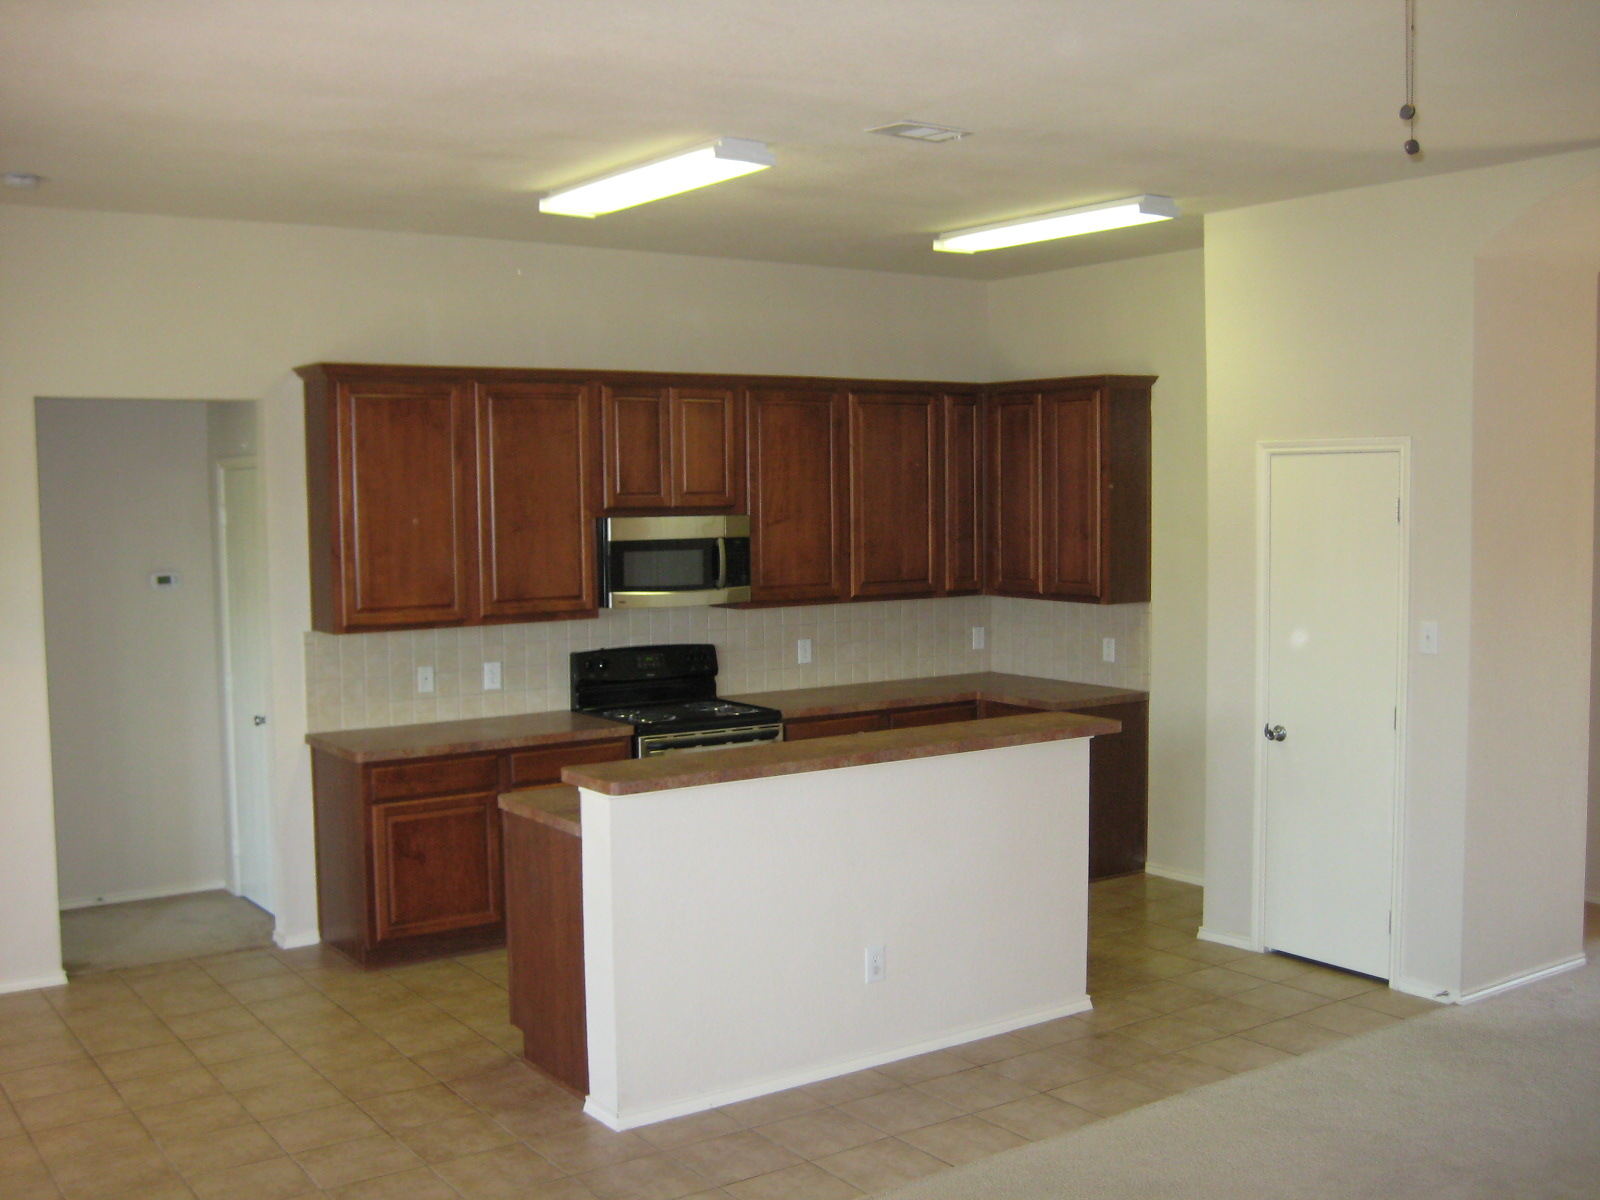 homes for rent in the dallas fort worth metroplex